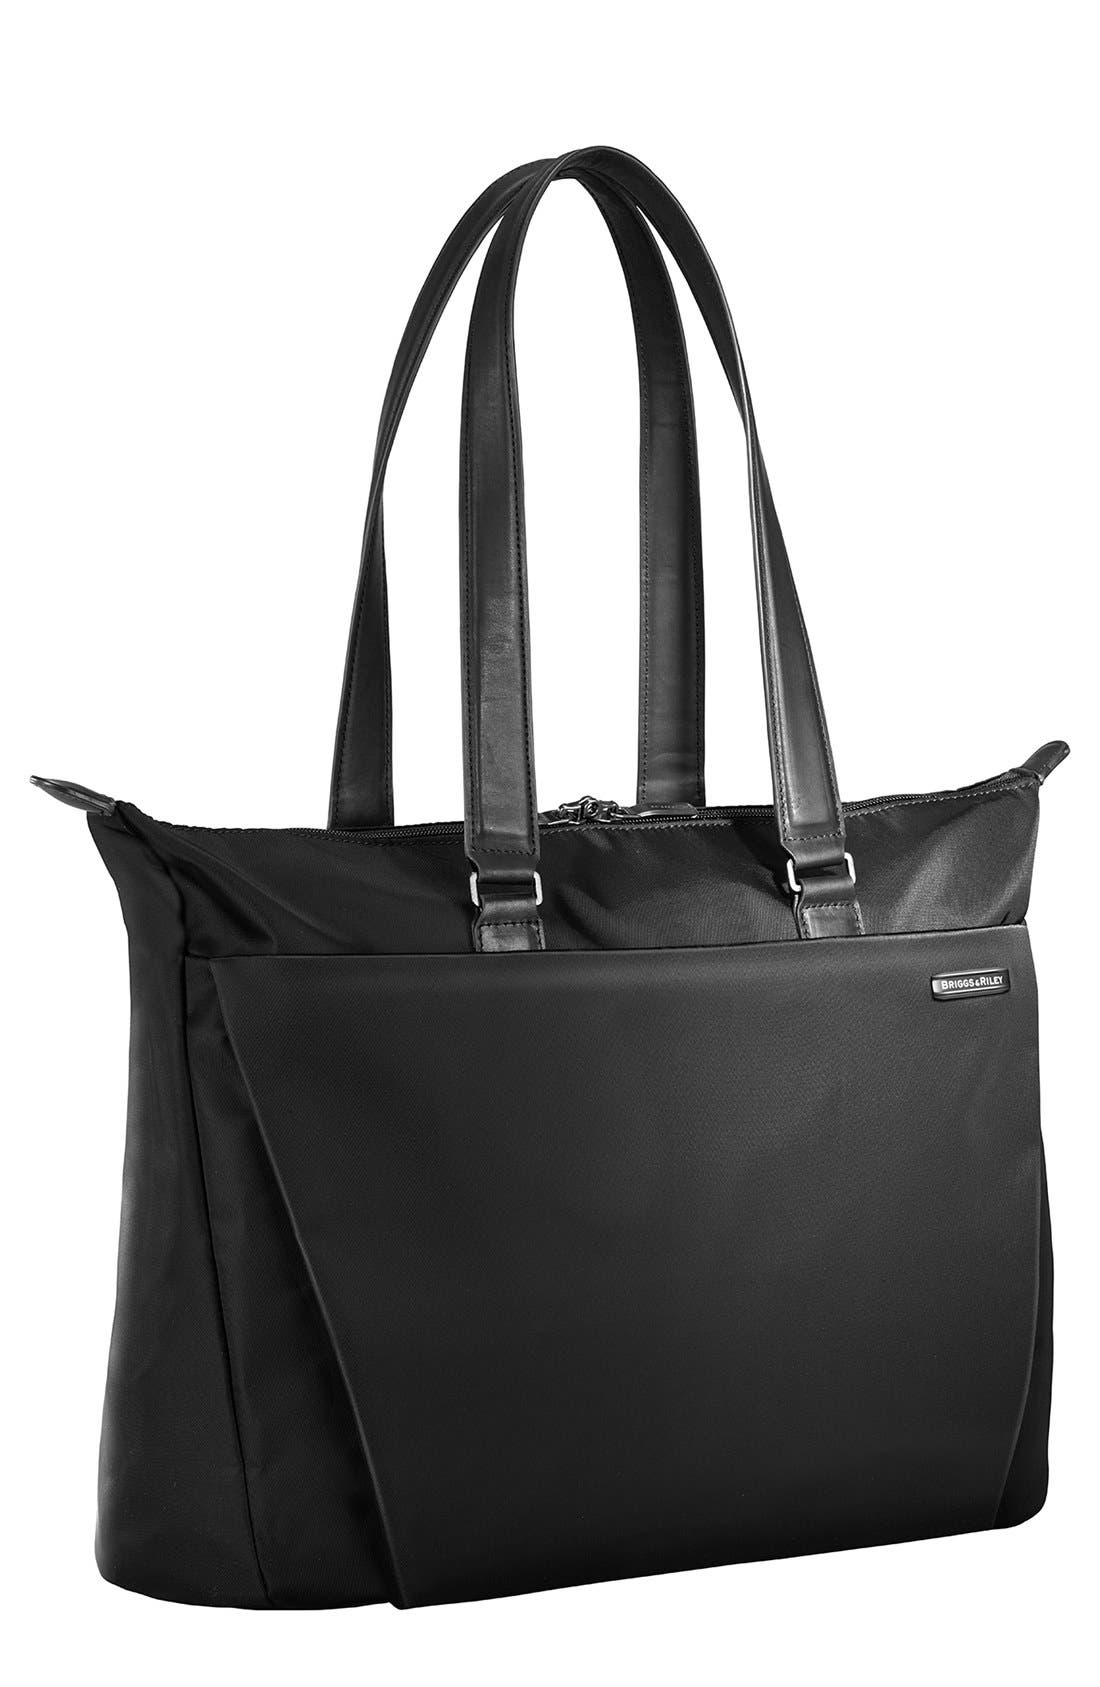 Sympatico Tote,                             Main thumbnail 1, color,                             Black